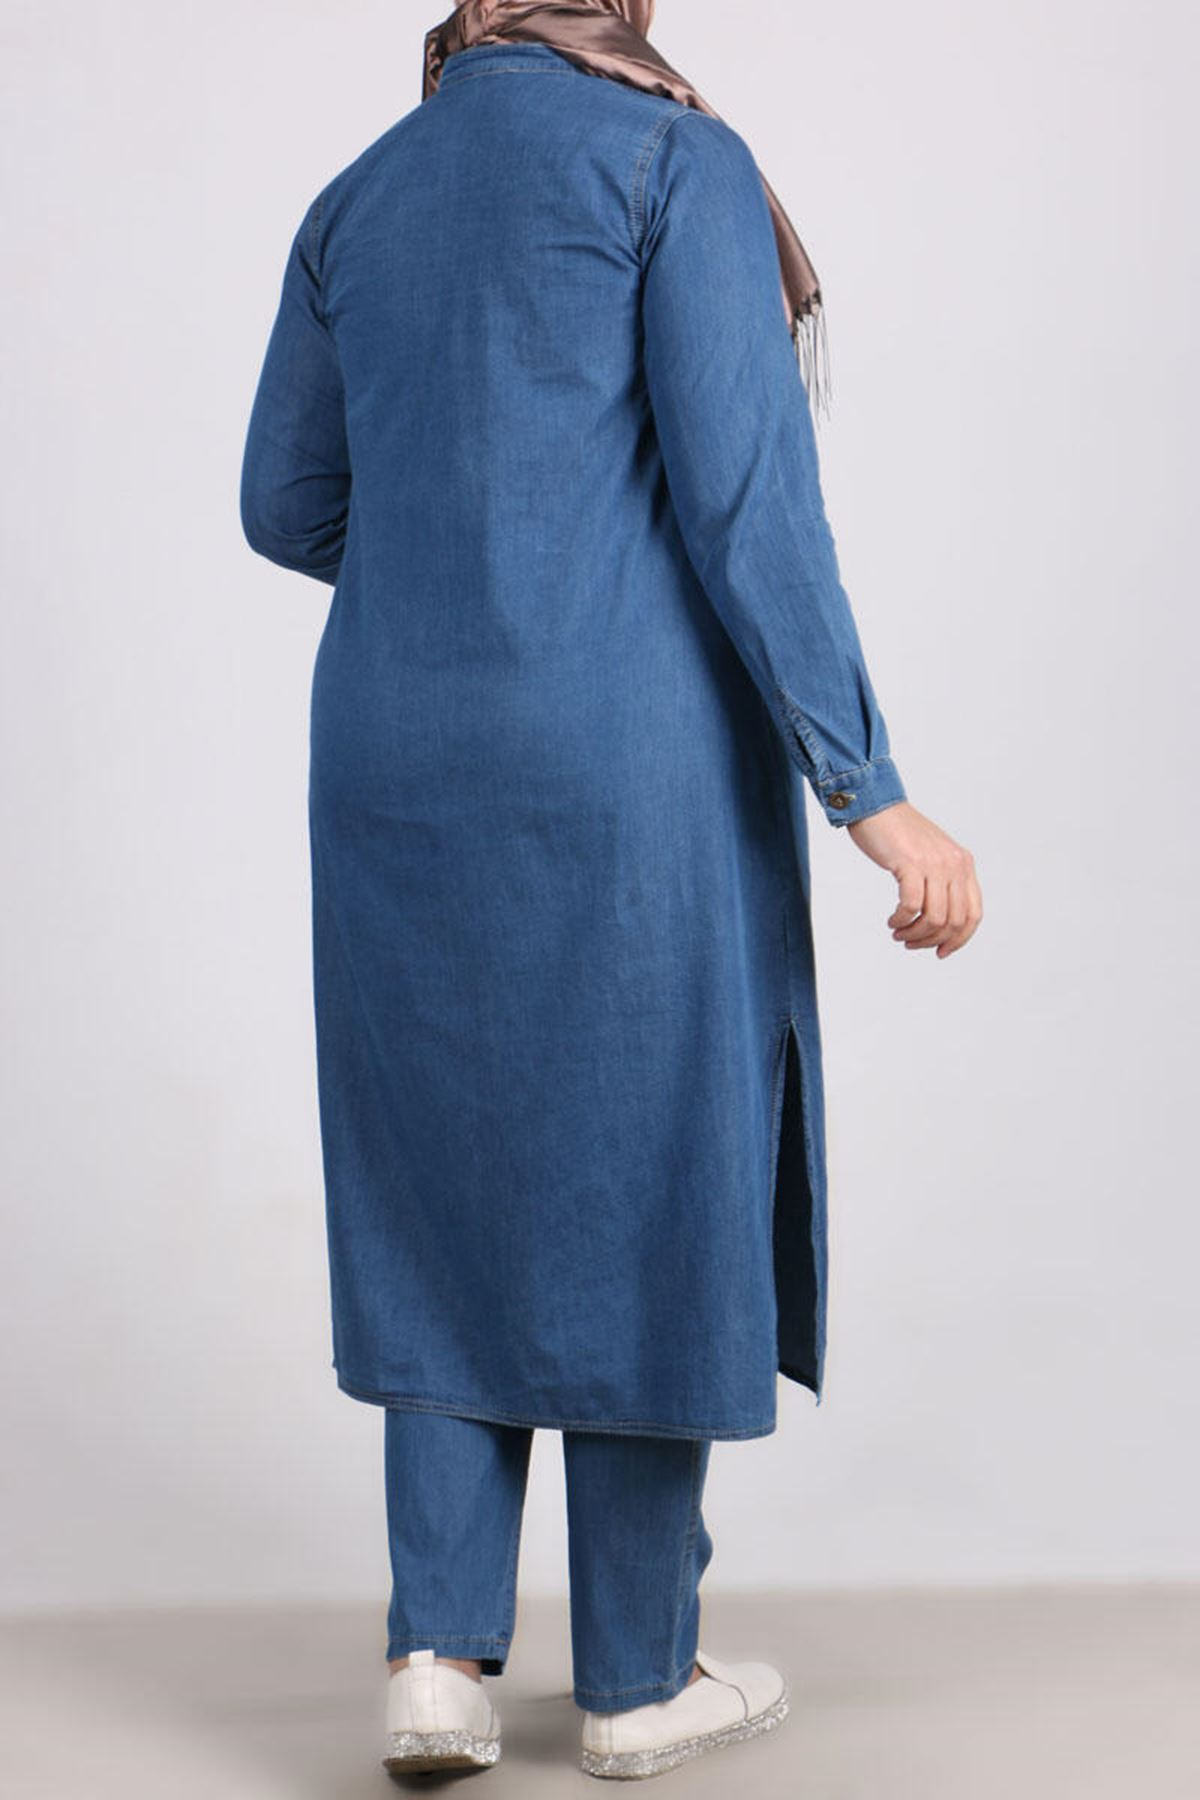 7680 Plus Size Denim Two Piece Set with Tunic and Pants-Blue